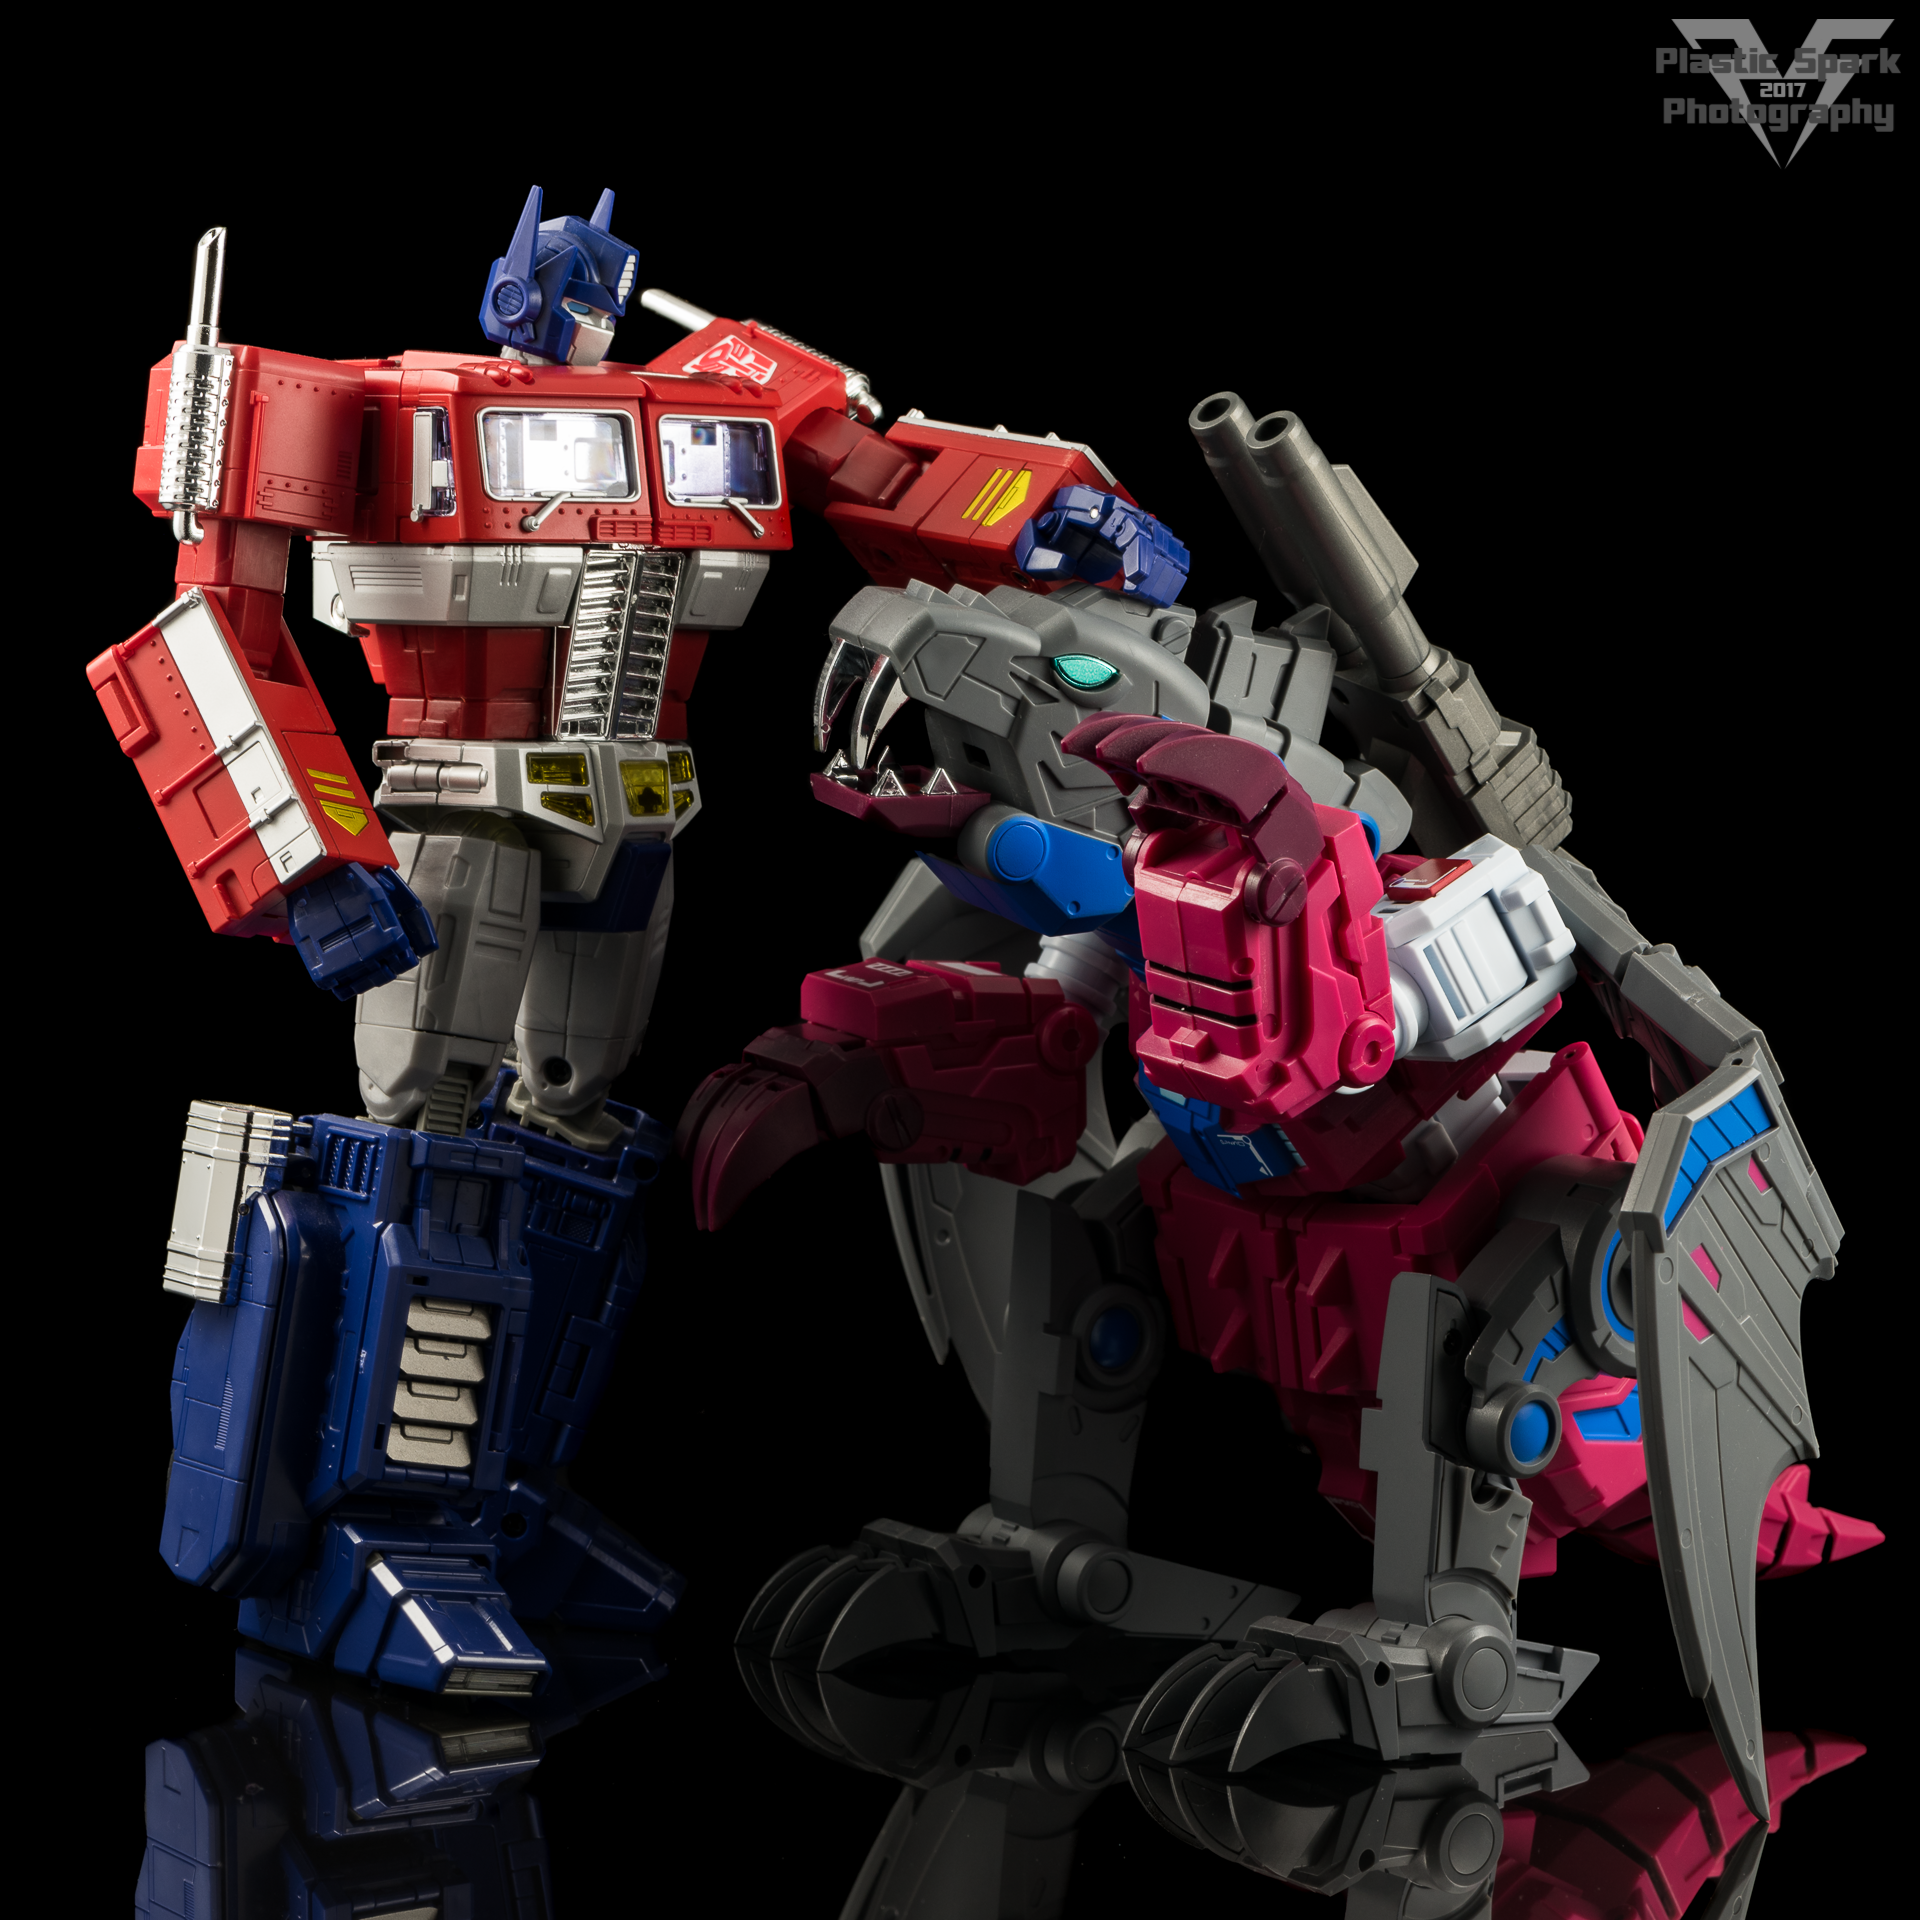 Fans-Hobby-MB-05-Flypro-(6-of-42).png